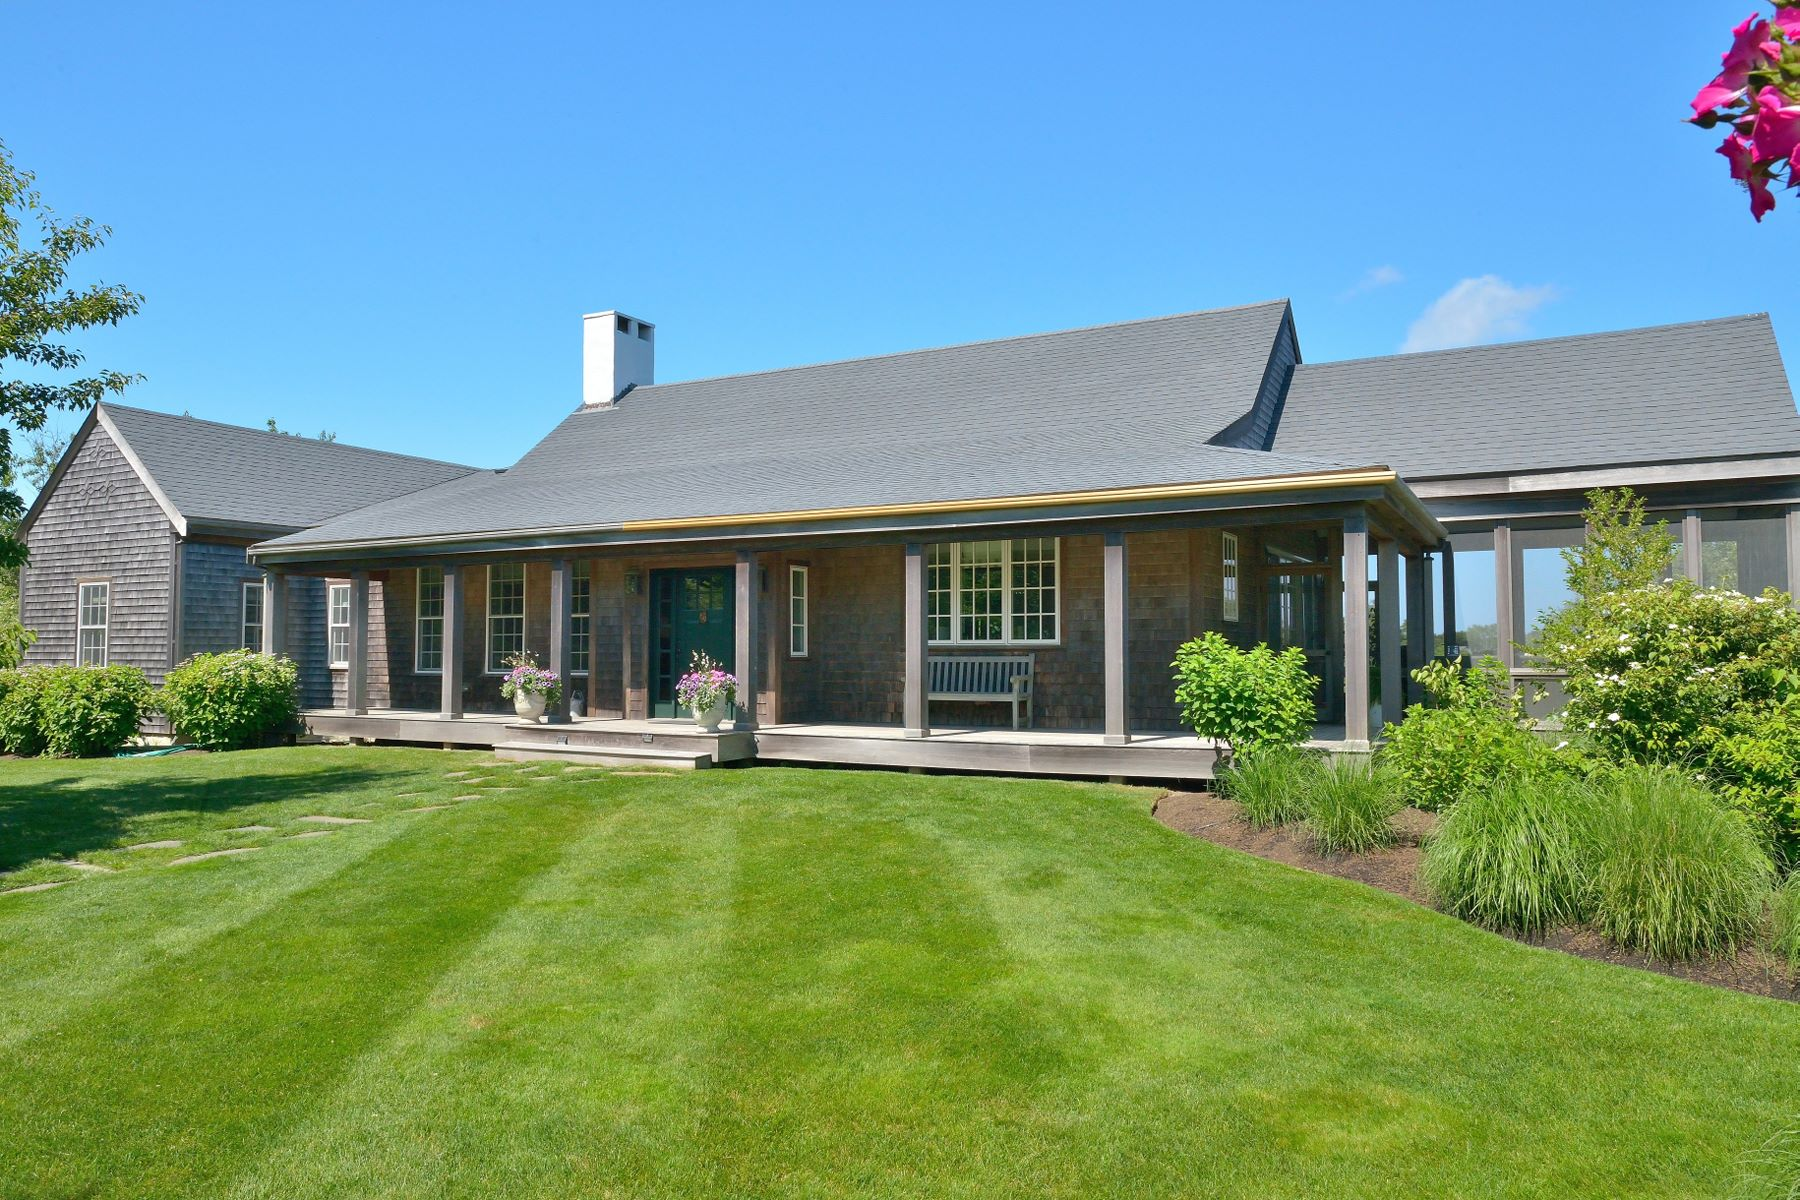 Single Family Home for Sale at Private Family Compound 41 Millbrook Road Nantucket, Massachusetts, 02554 United States